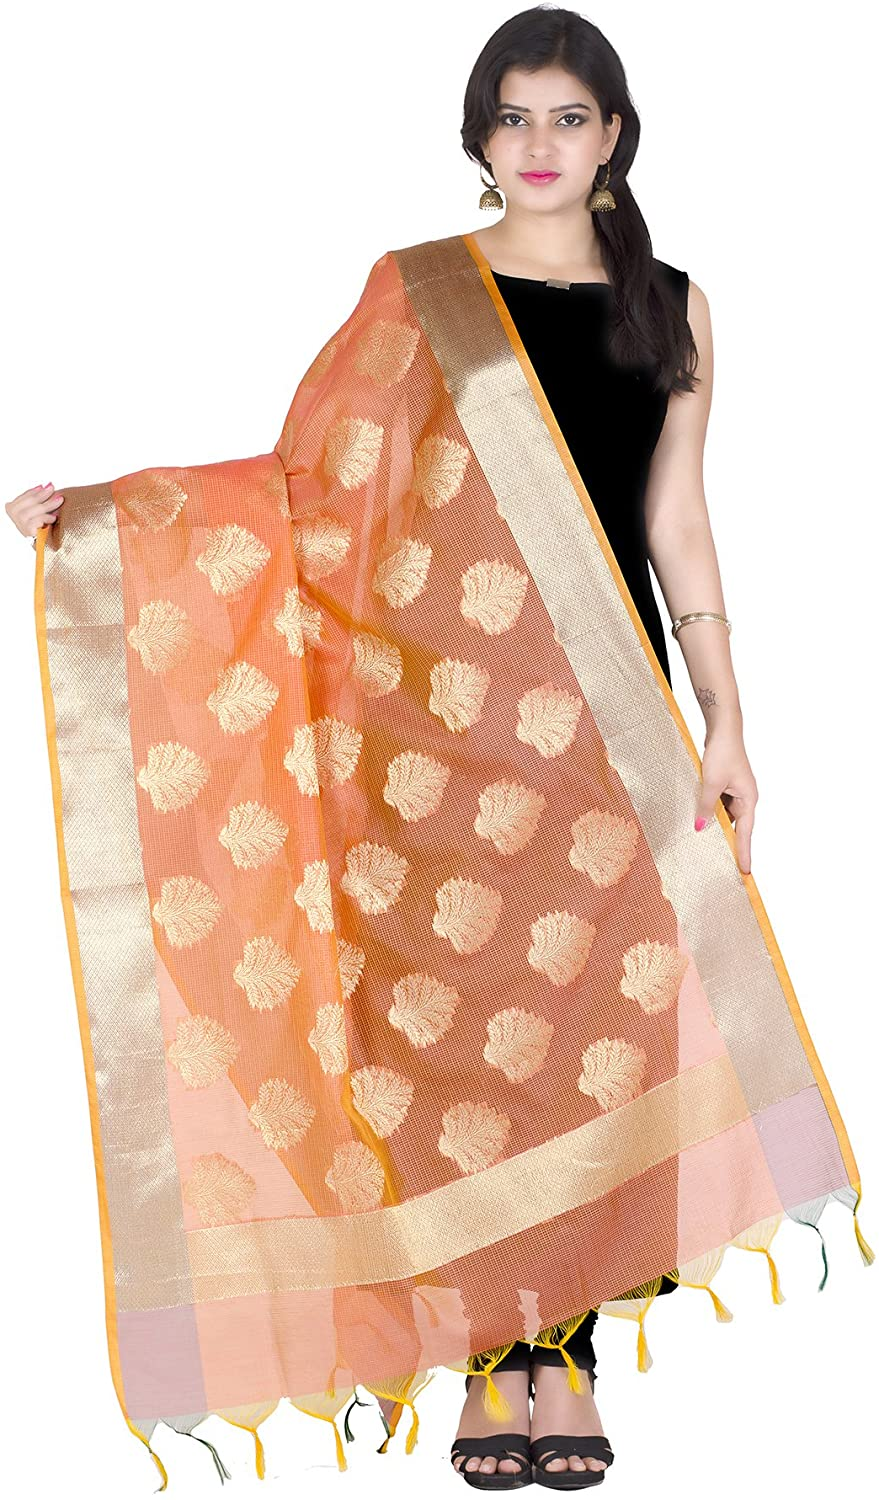 Chandrakala Women's Handwoven Zari Work Indian Ethnic Banarasi Dupatta Stole Scarf(D111)